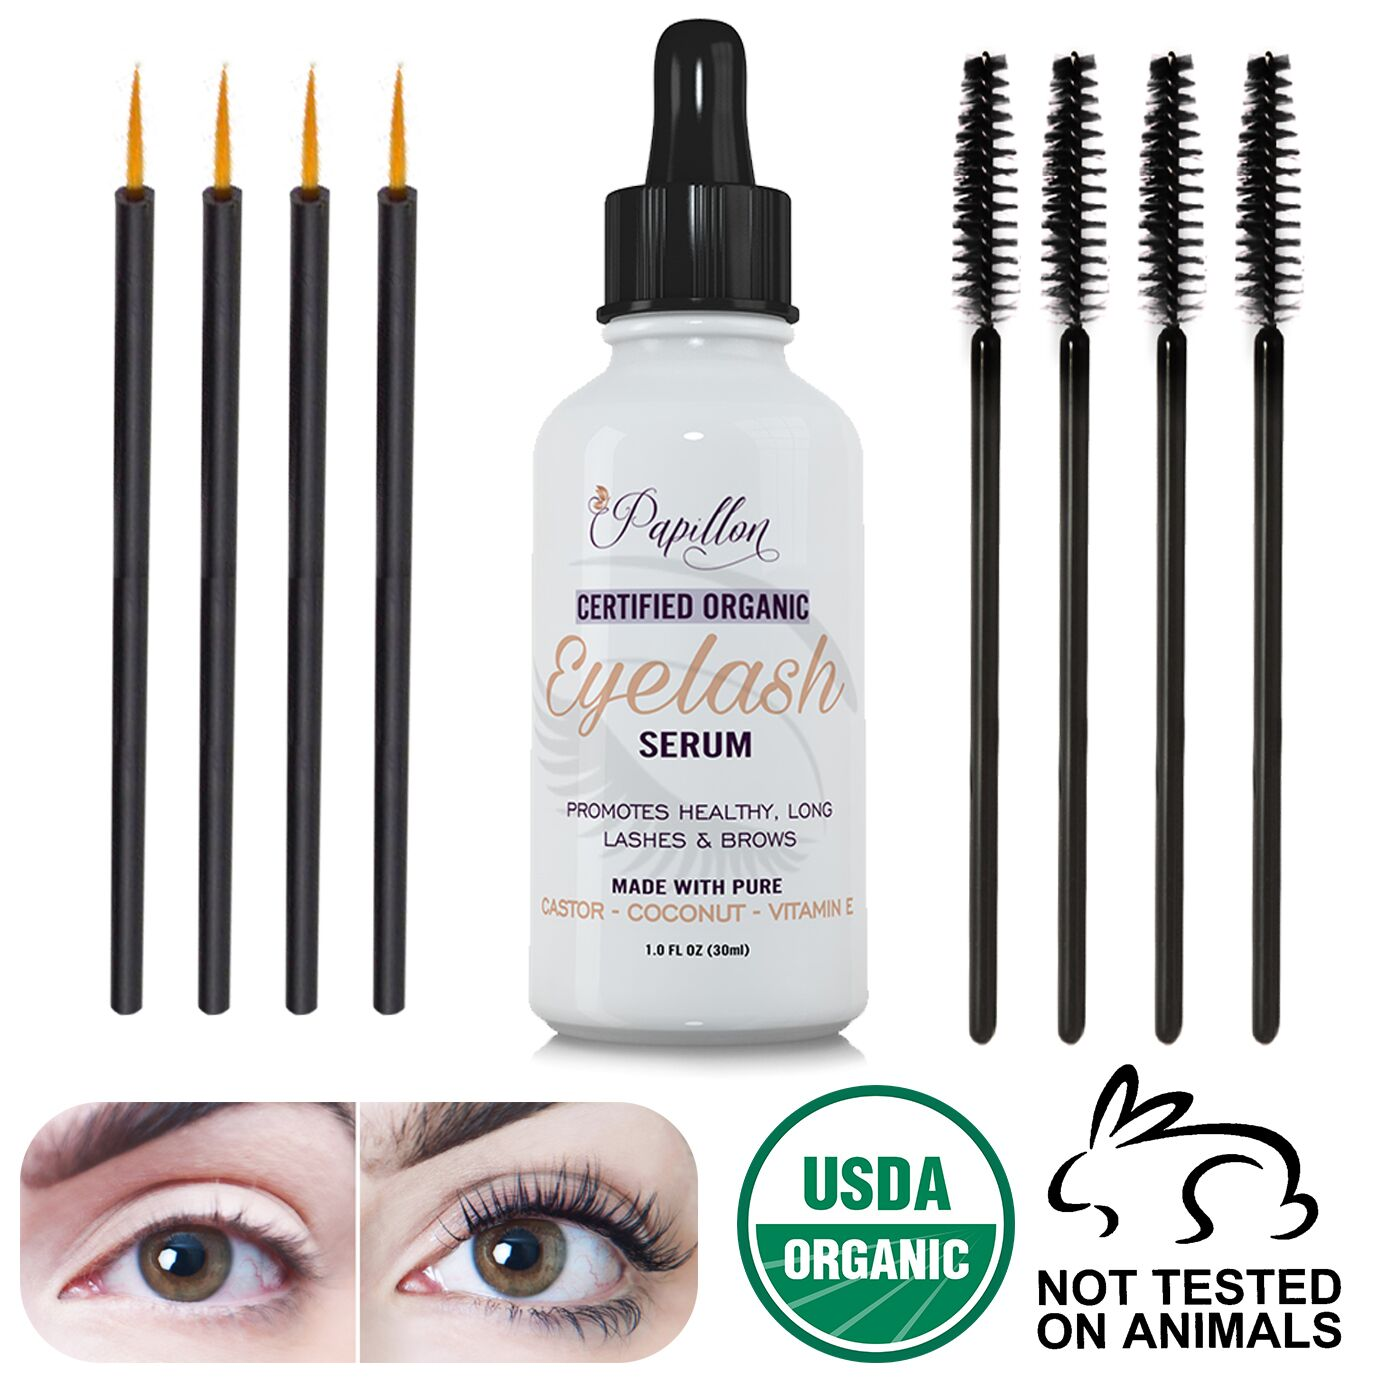 315af4fb78b Simply apply 2 to 3 drops on fingertips, or apply with included brush, and  massage into eyelashes or eyebrows daily at bedtime. eyelash growth serum  ...